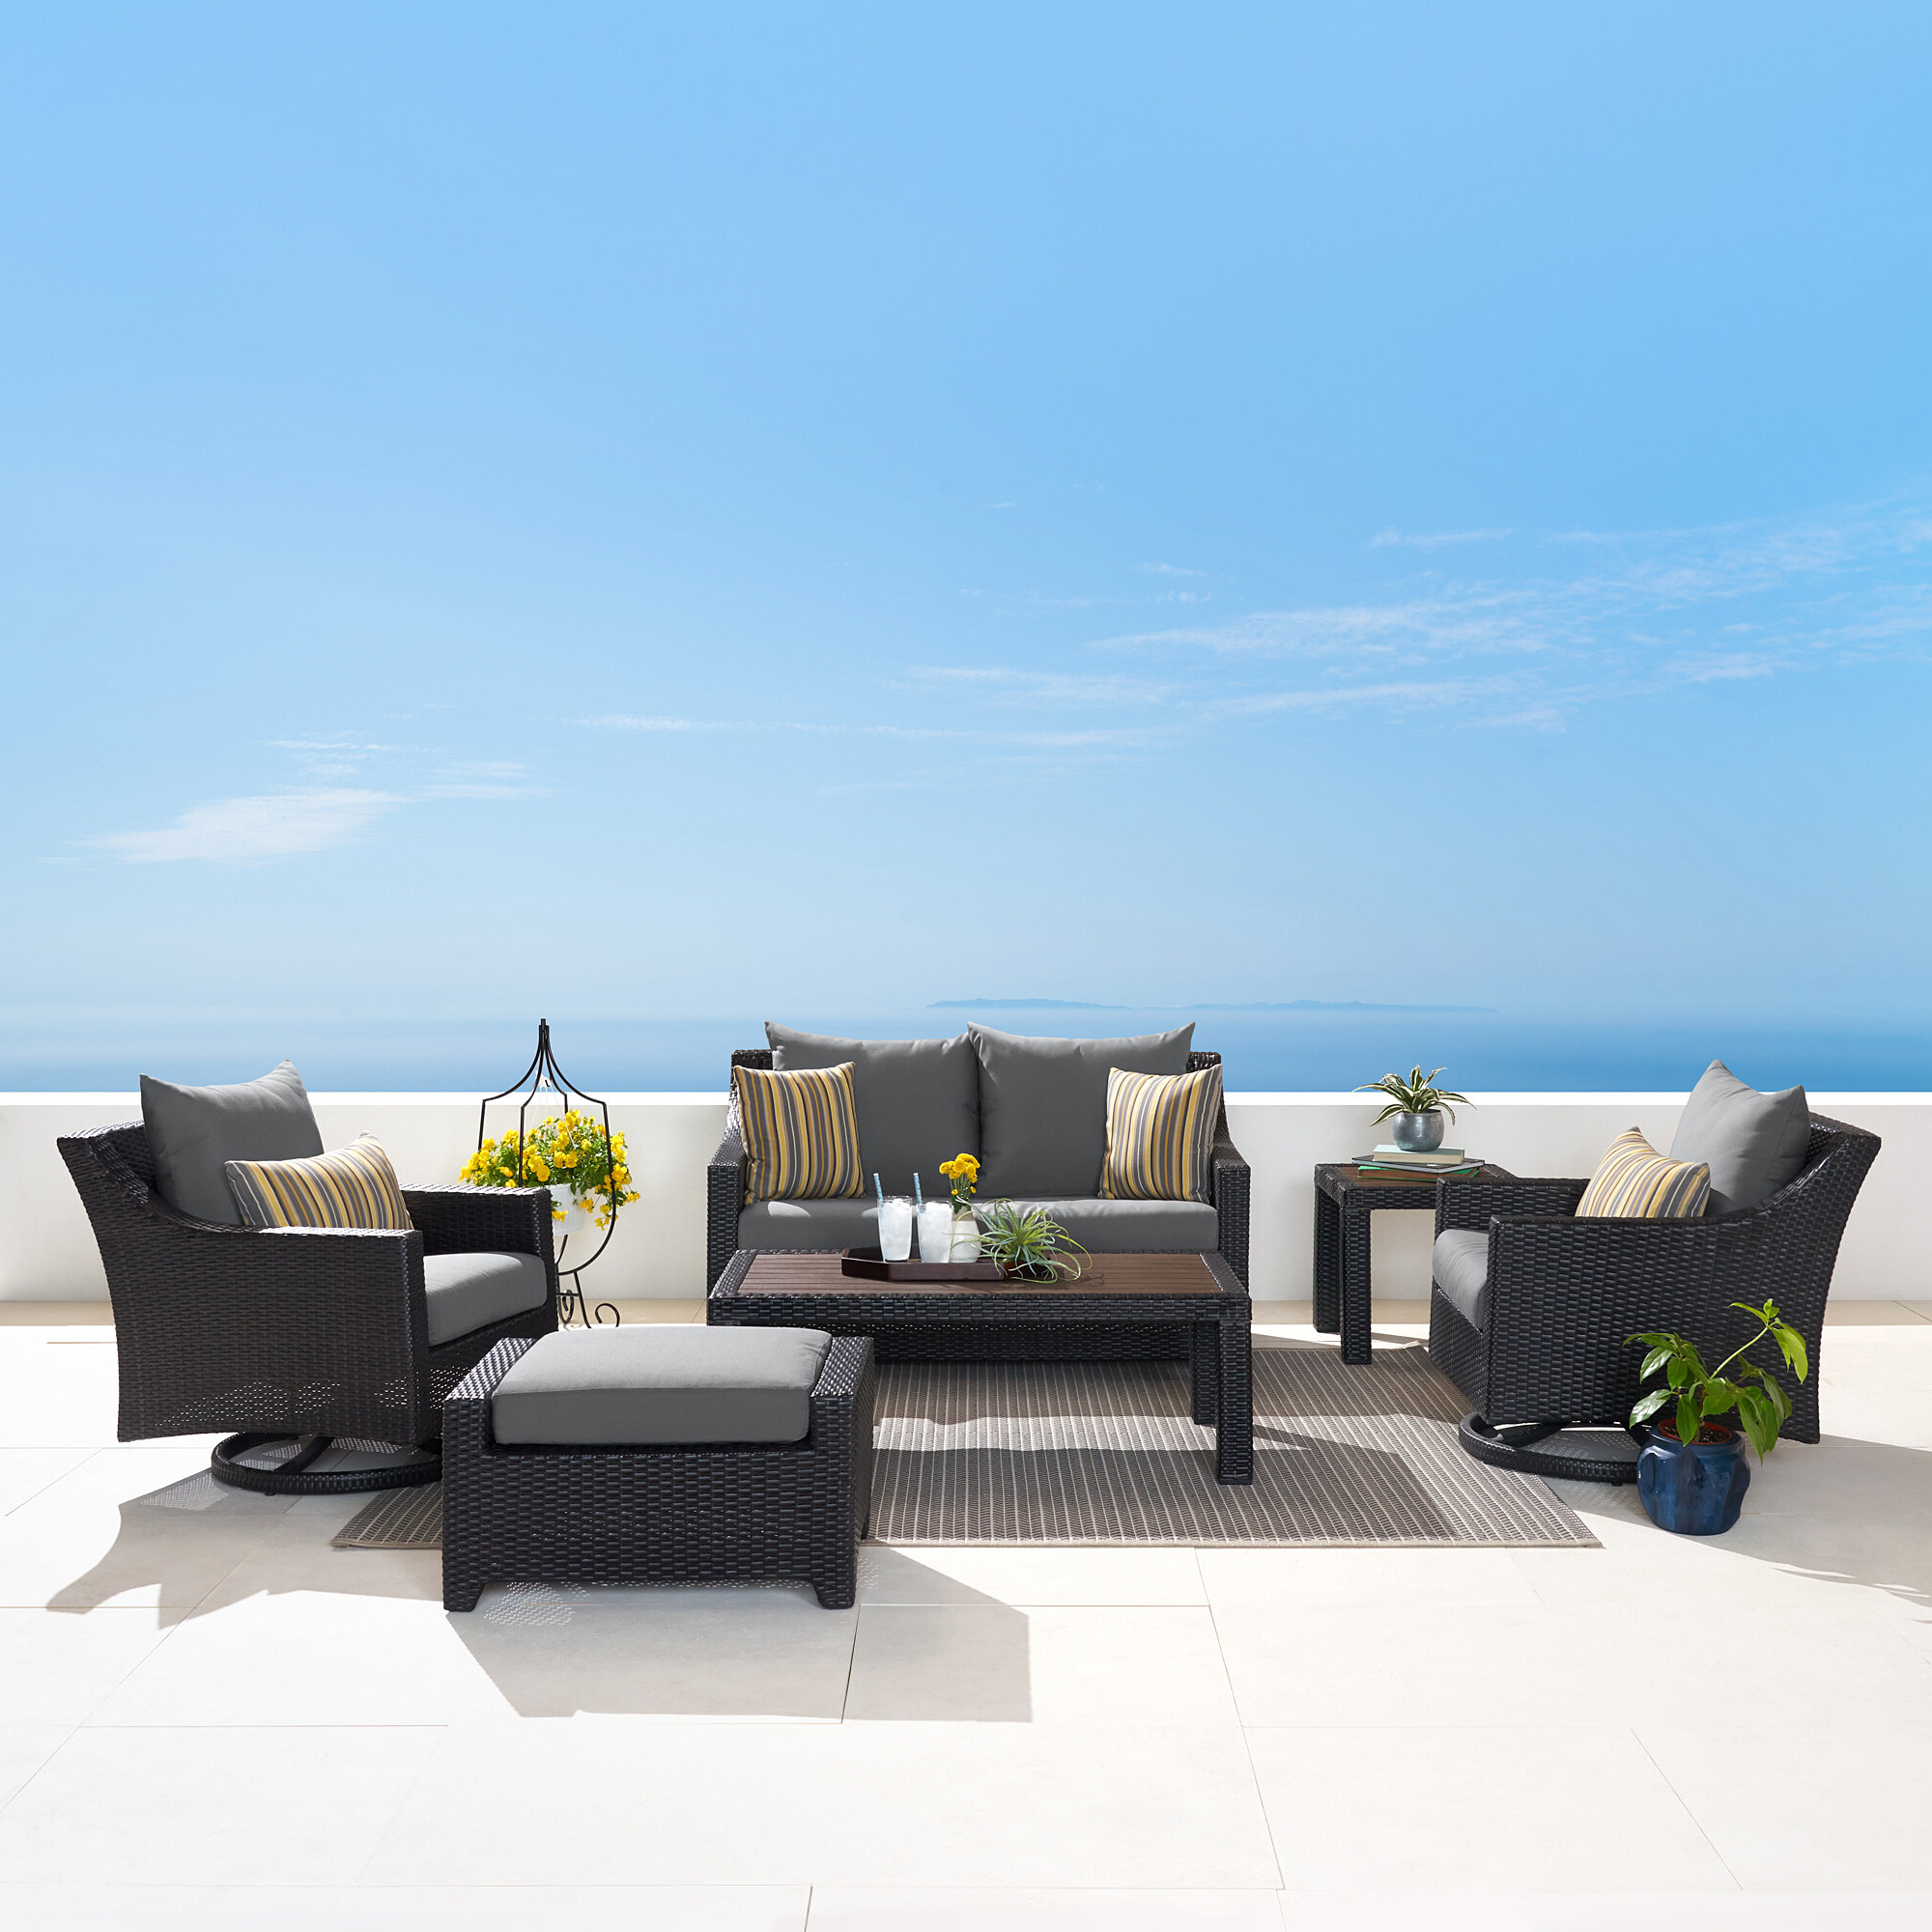 Northridge 6 Piece Sunbrella Sofa Set With Cushions Inside Current Northridge Patio Sofas With Sunbrella Cushions (View 9 of 20)